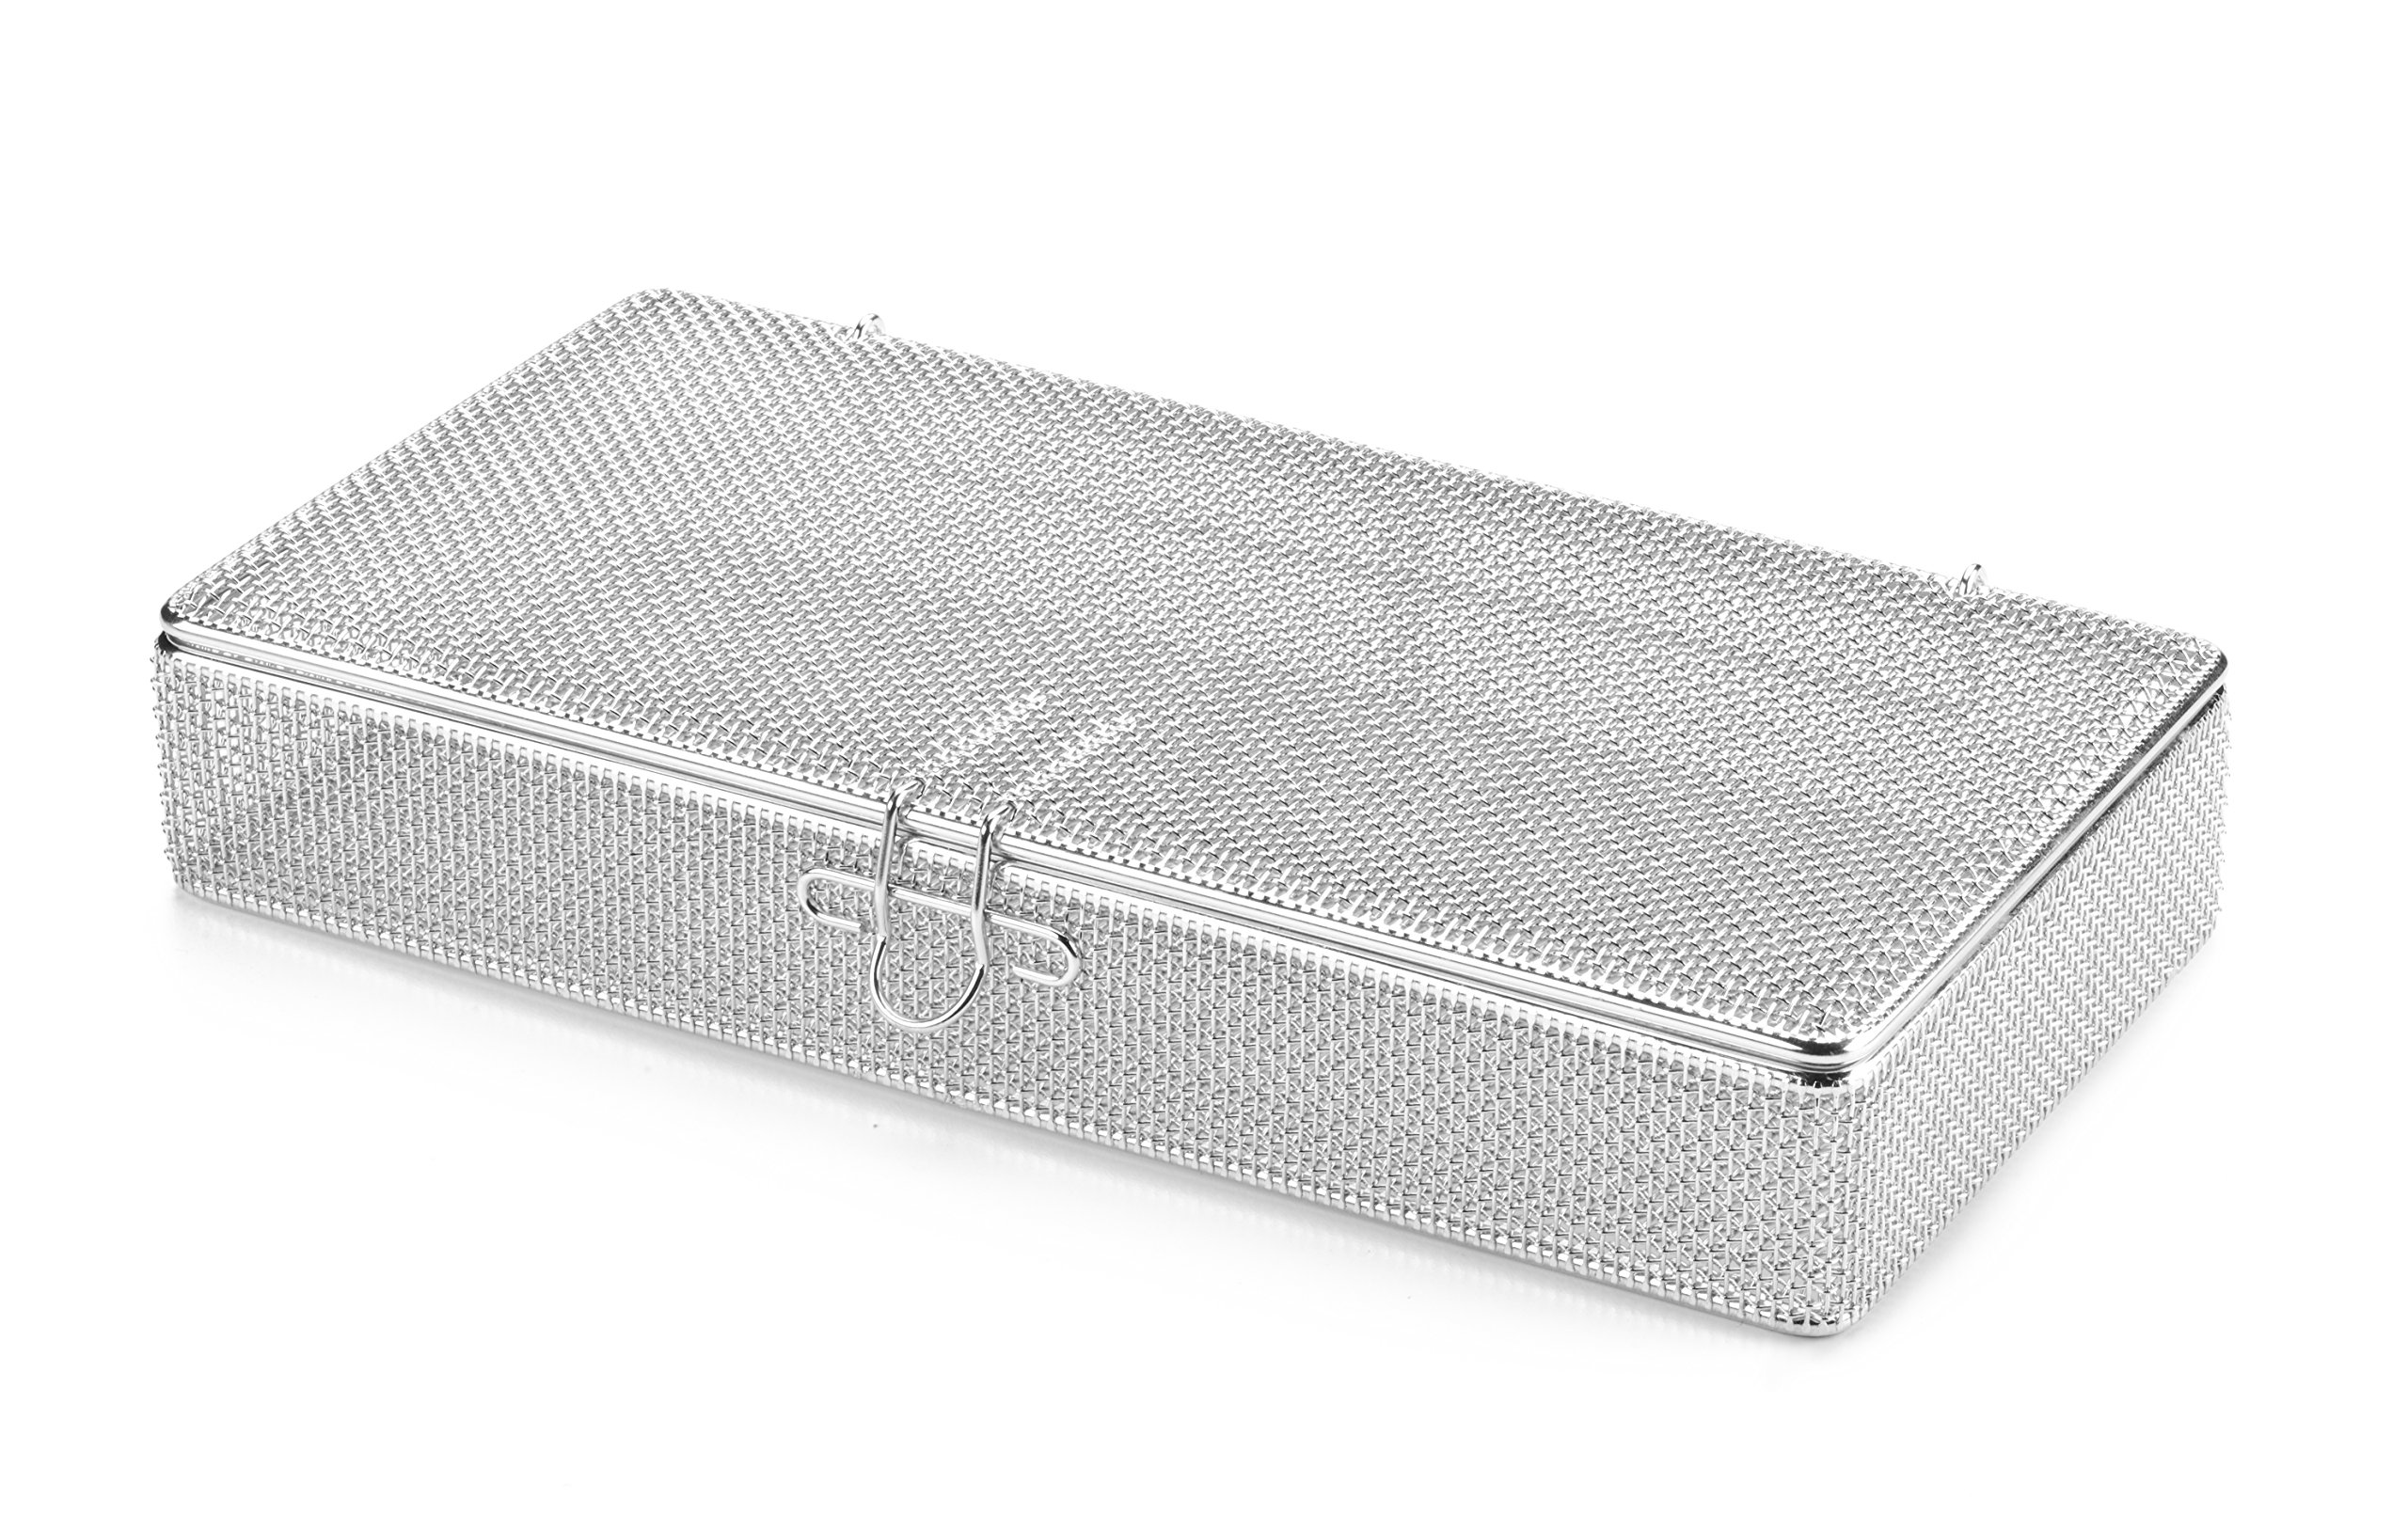 Key Surgical MT-7200 Micro Mesh Tray with